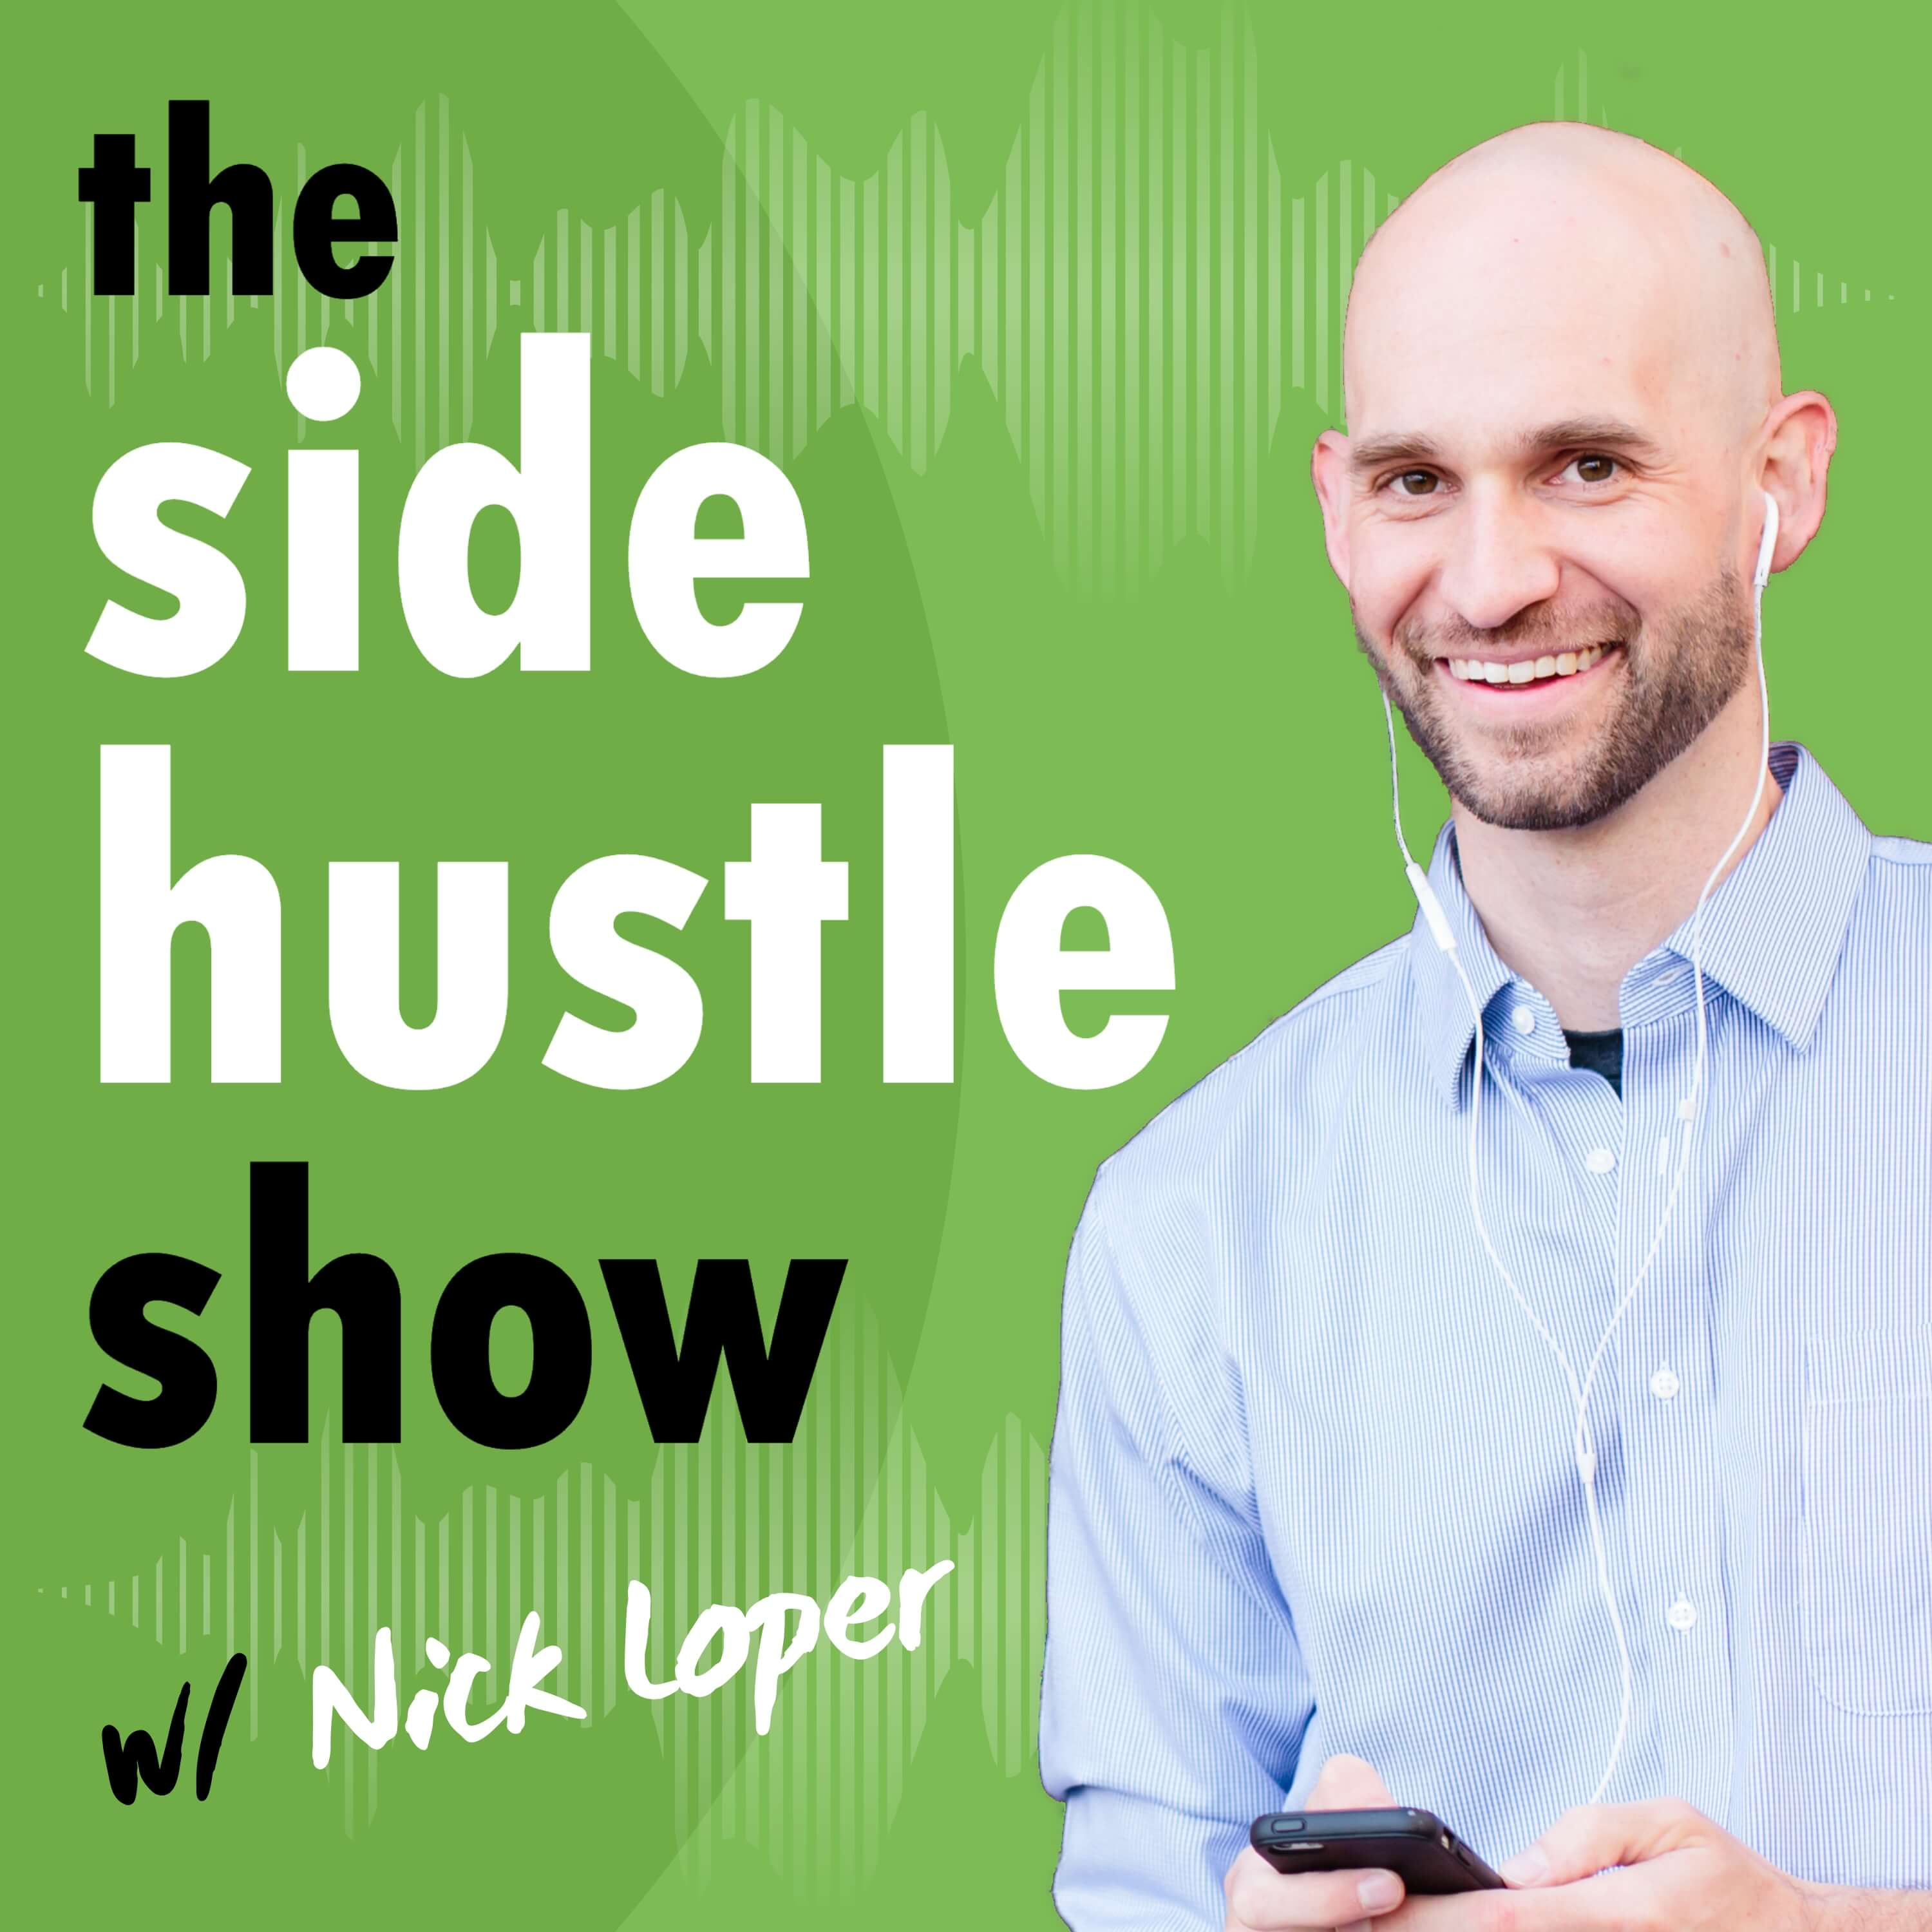 The Side Hustle Show: Business Ideas for Entrepreneurs and Side Hustle Nation